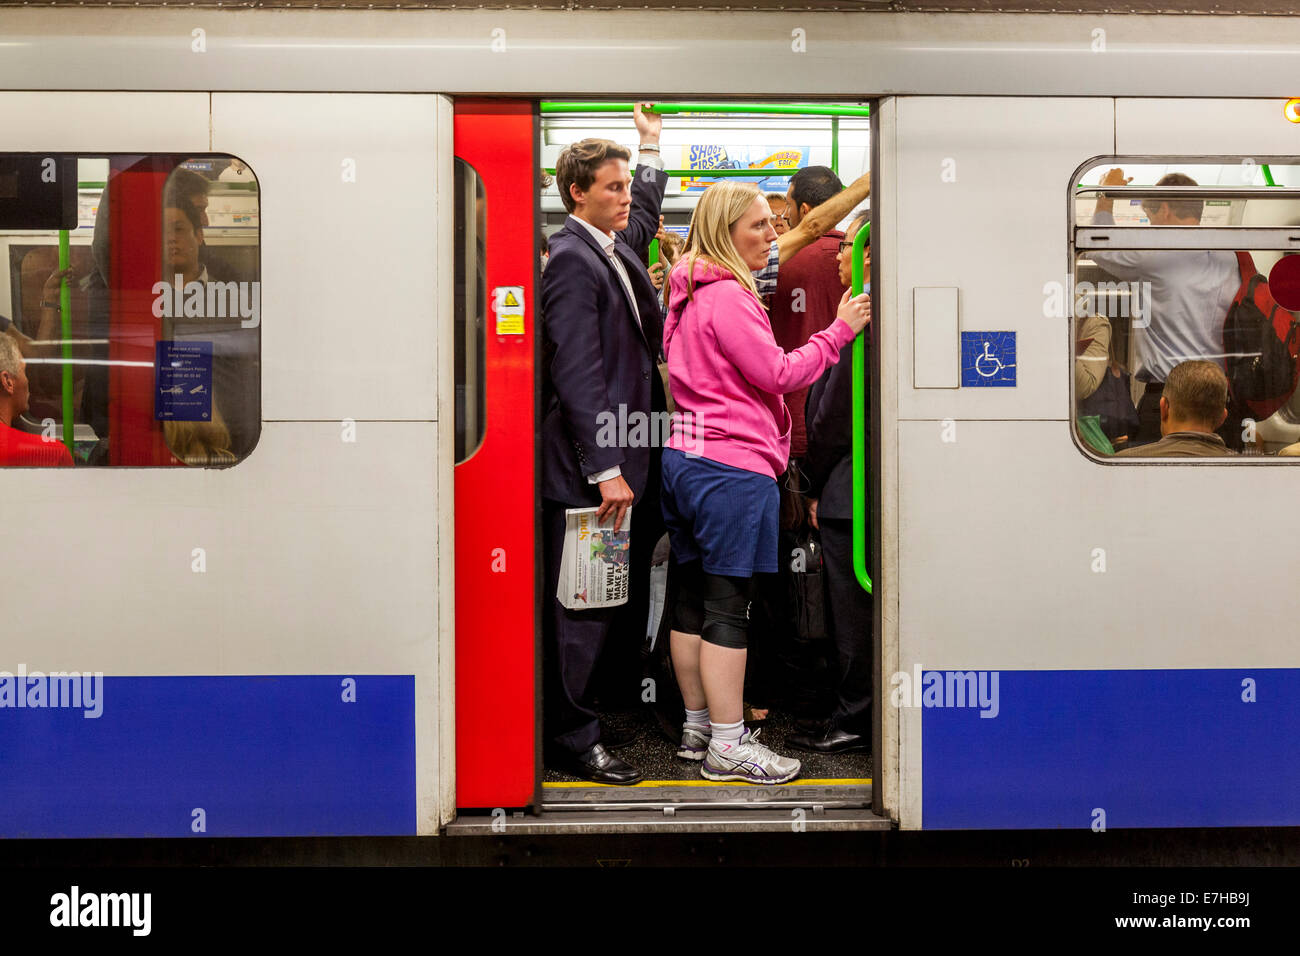 Commuters On Board A London Underground Train, Westminster Station, London, England - Stock Image